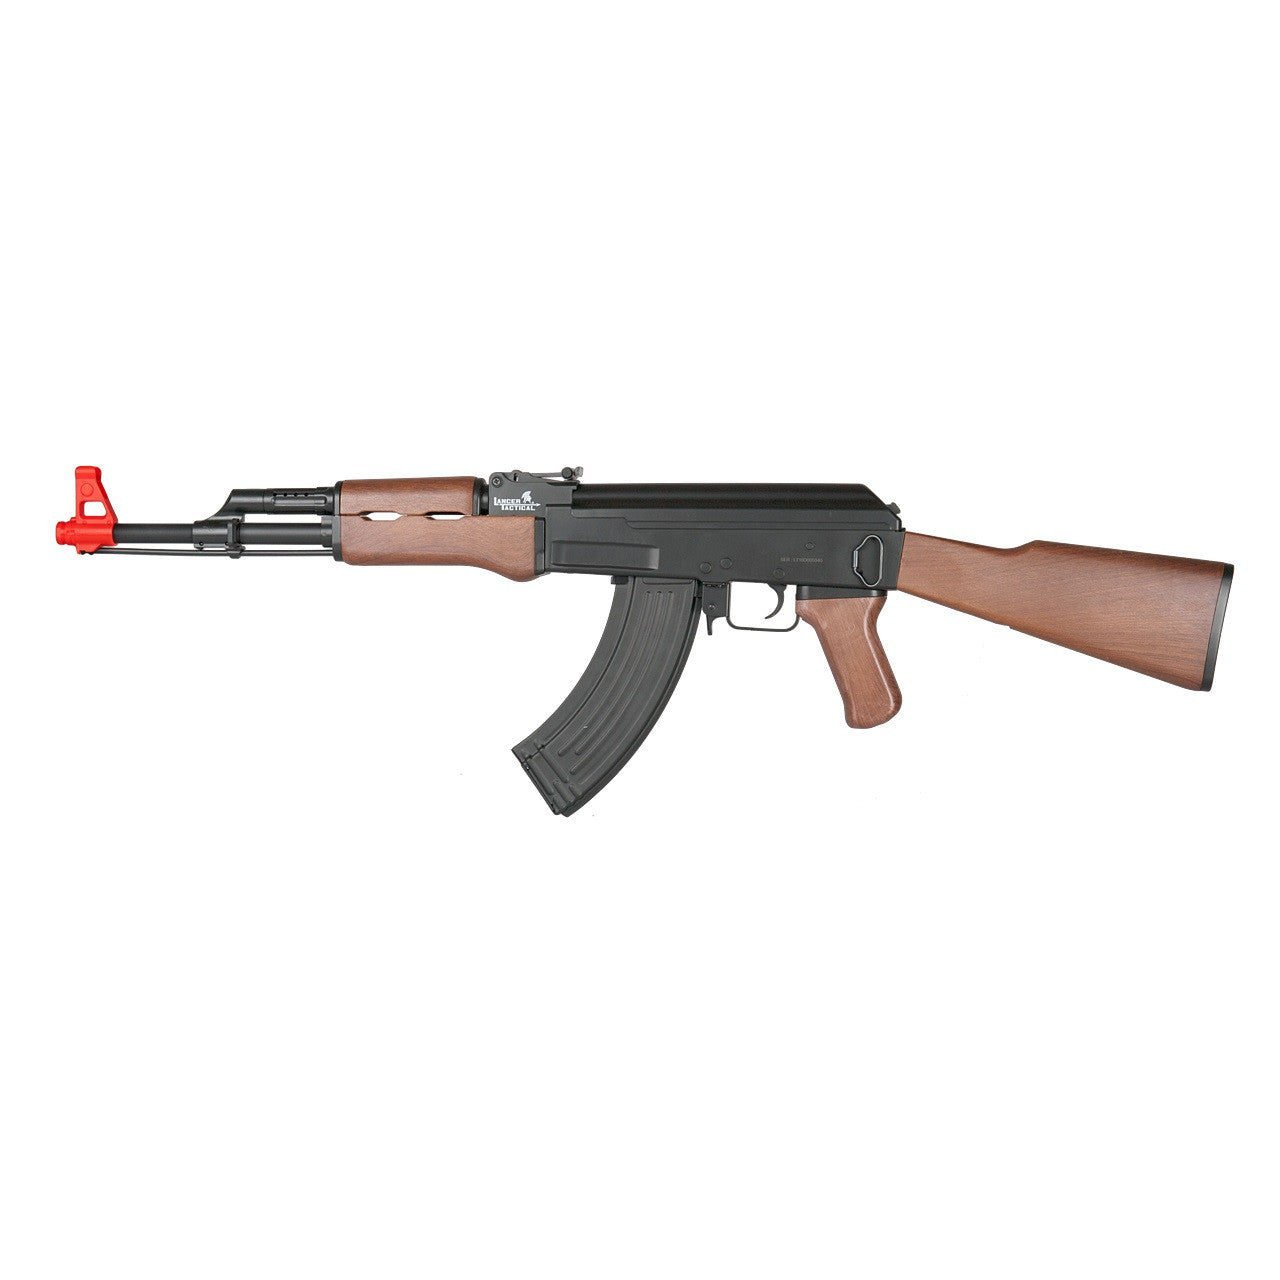 LANCER TACTICAL AK47 AEG RIFLE W/ FULL STOCK